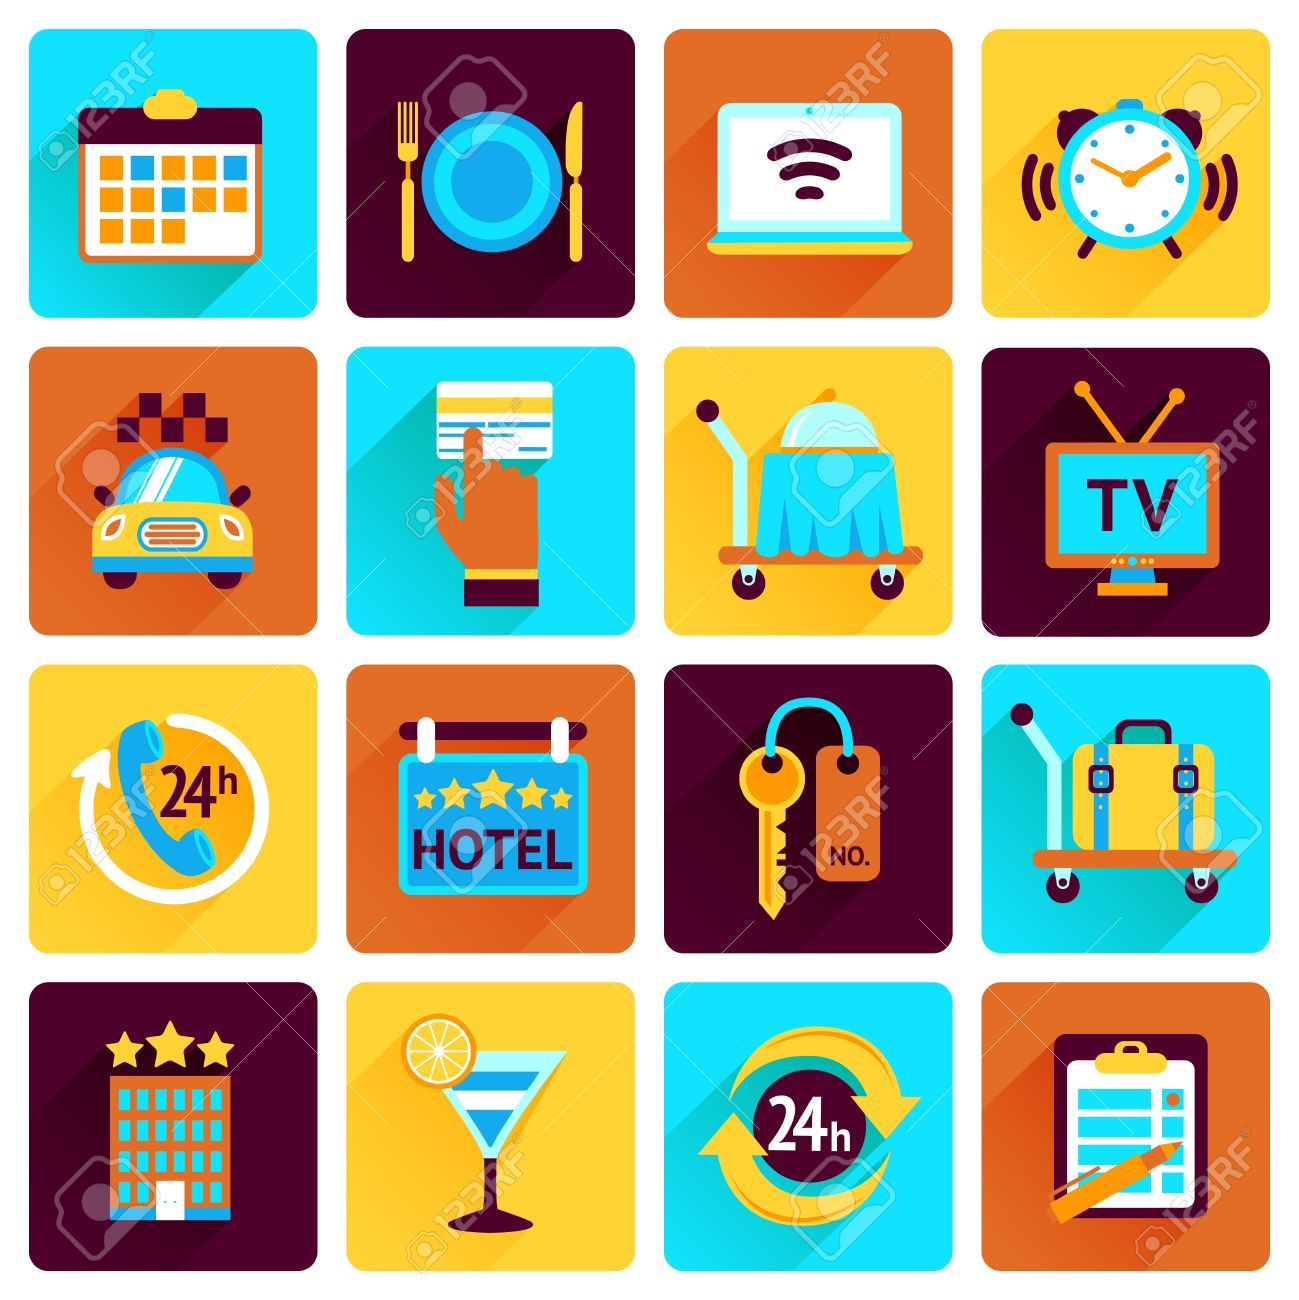 3,402 Hotel Reservation Stock Illustrations, Cliparts And Royalty ...